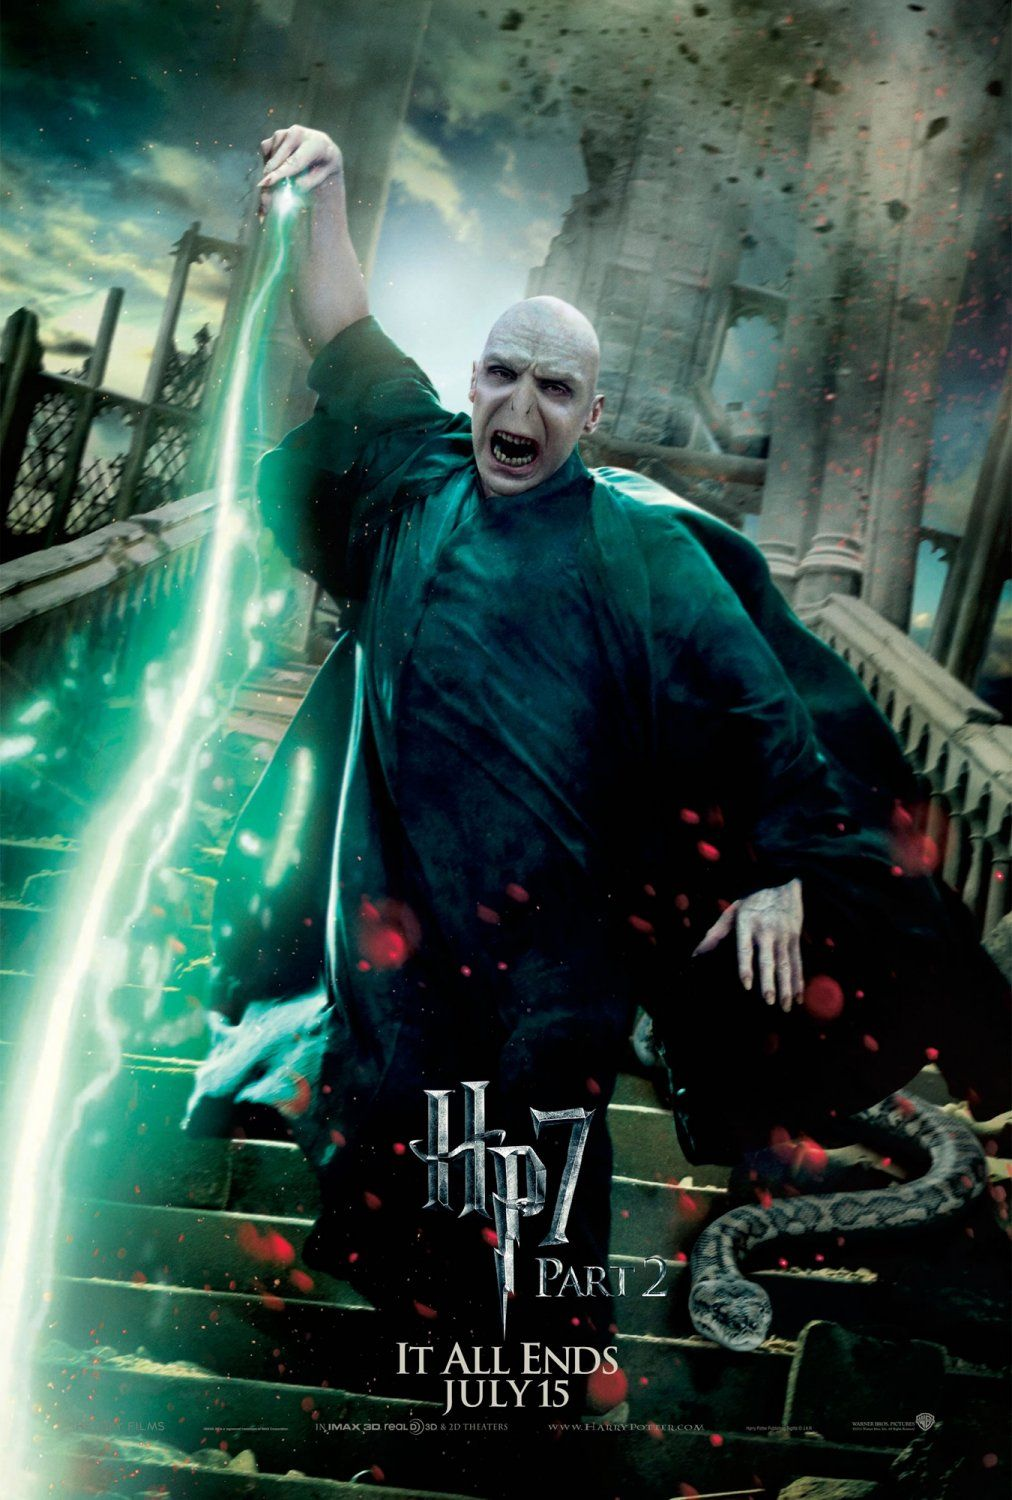 Harry Potter And The Deathly Hallows Part 2 It All Ends July 15 Voldemort With Nagini Poster De Harry Potter Jokes Harry Potter Funny Harry Potter Memes